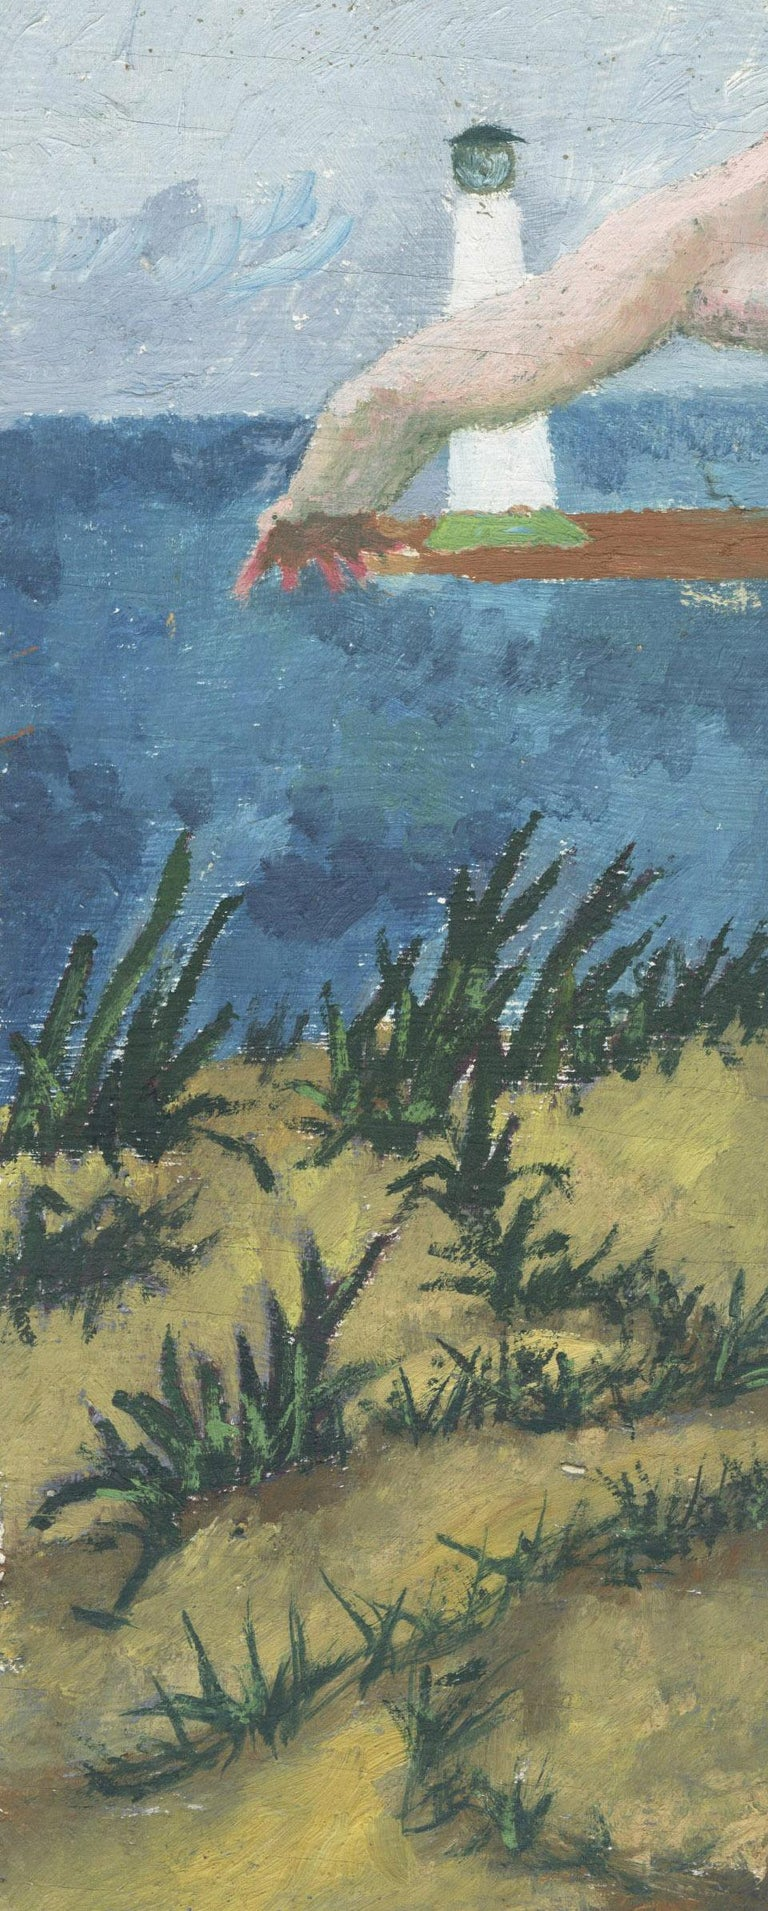 Untitled (Nude in front of light house, Lake Erie) - Gray Nude Painting by Charles Harris AKA Beni Kosh